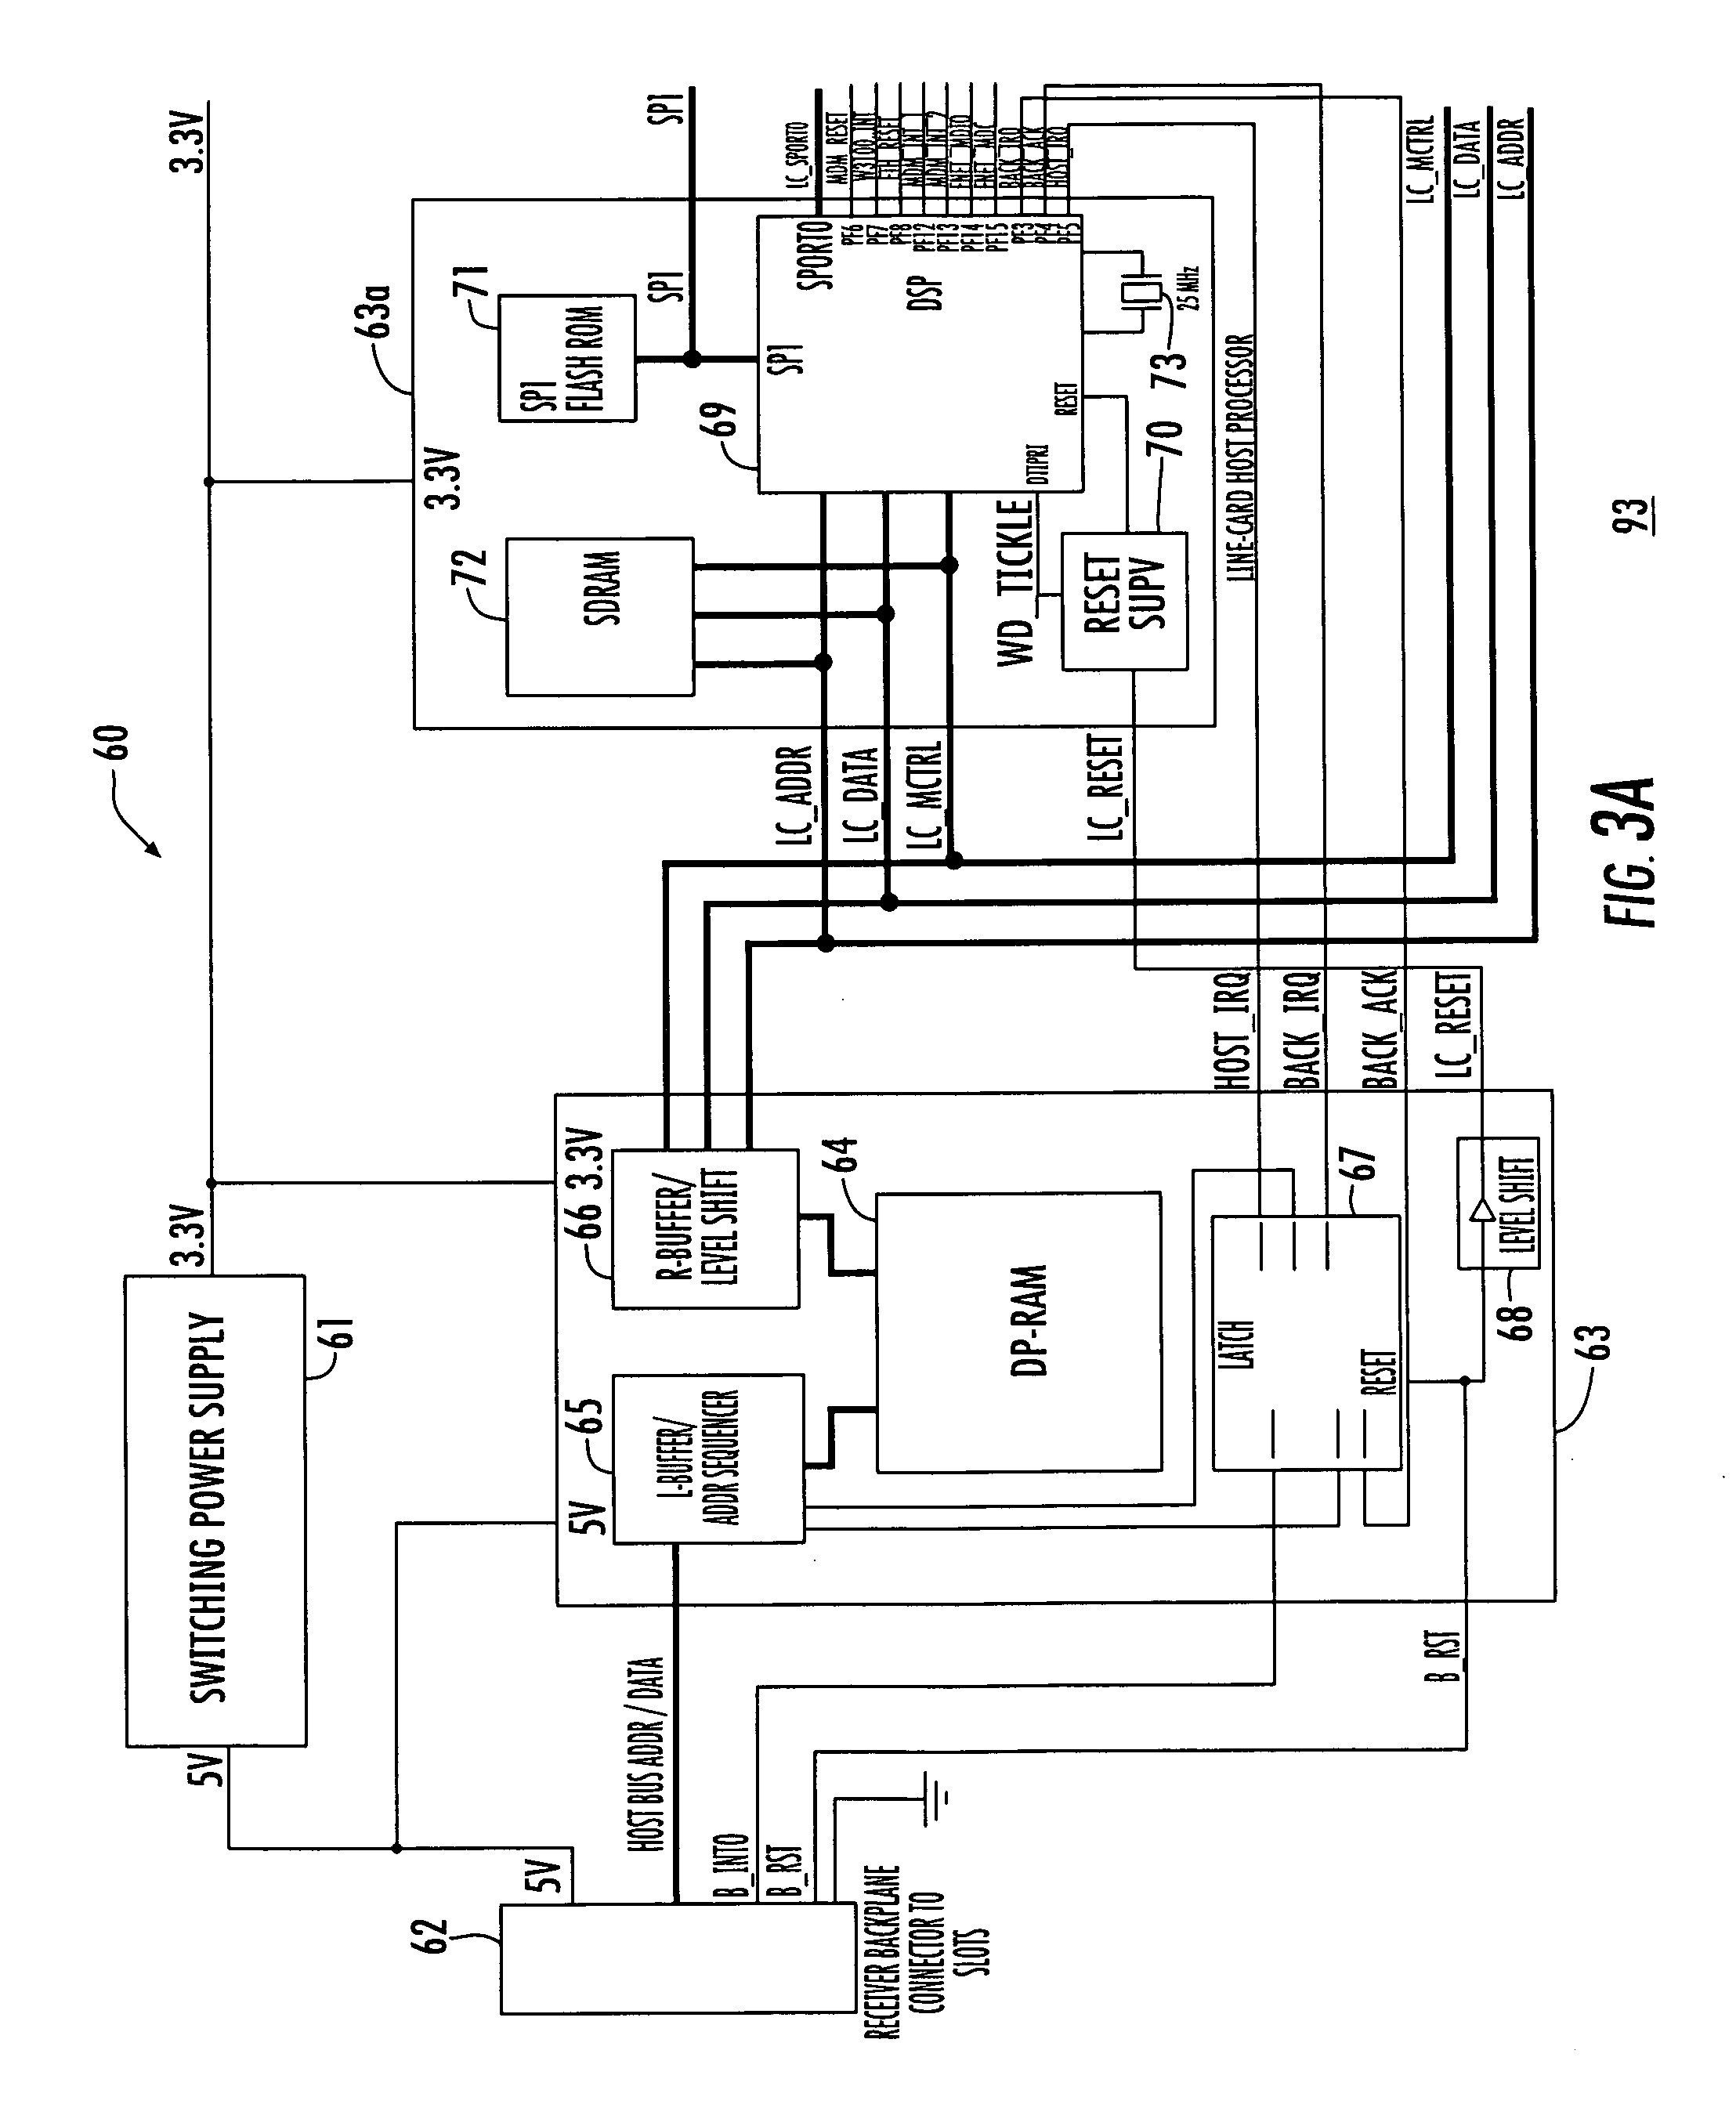 fire alarm system wiring diagram 3 schema wiring diagram home security wiring diagram power supply [ 2216 x 2714 Pixel ]